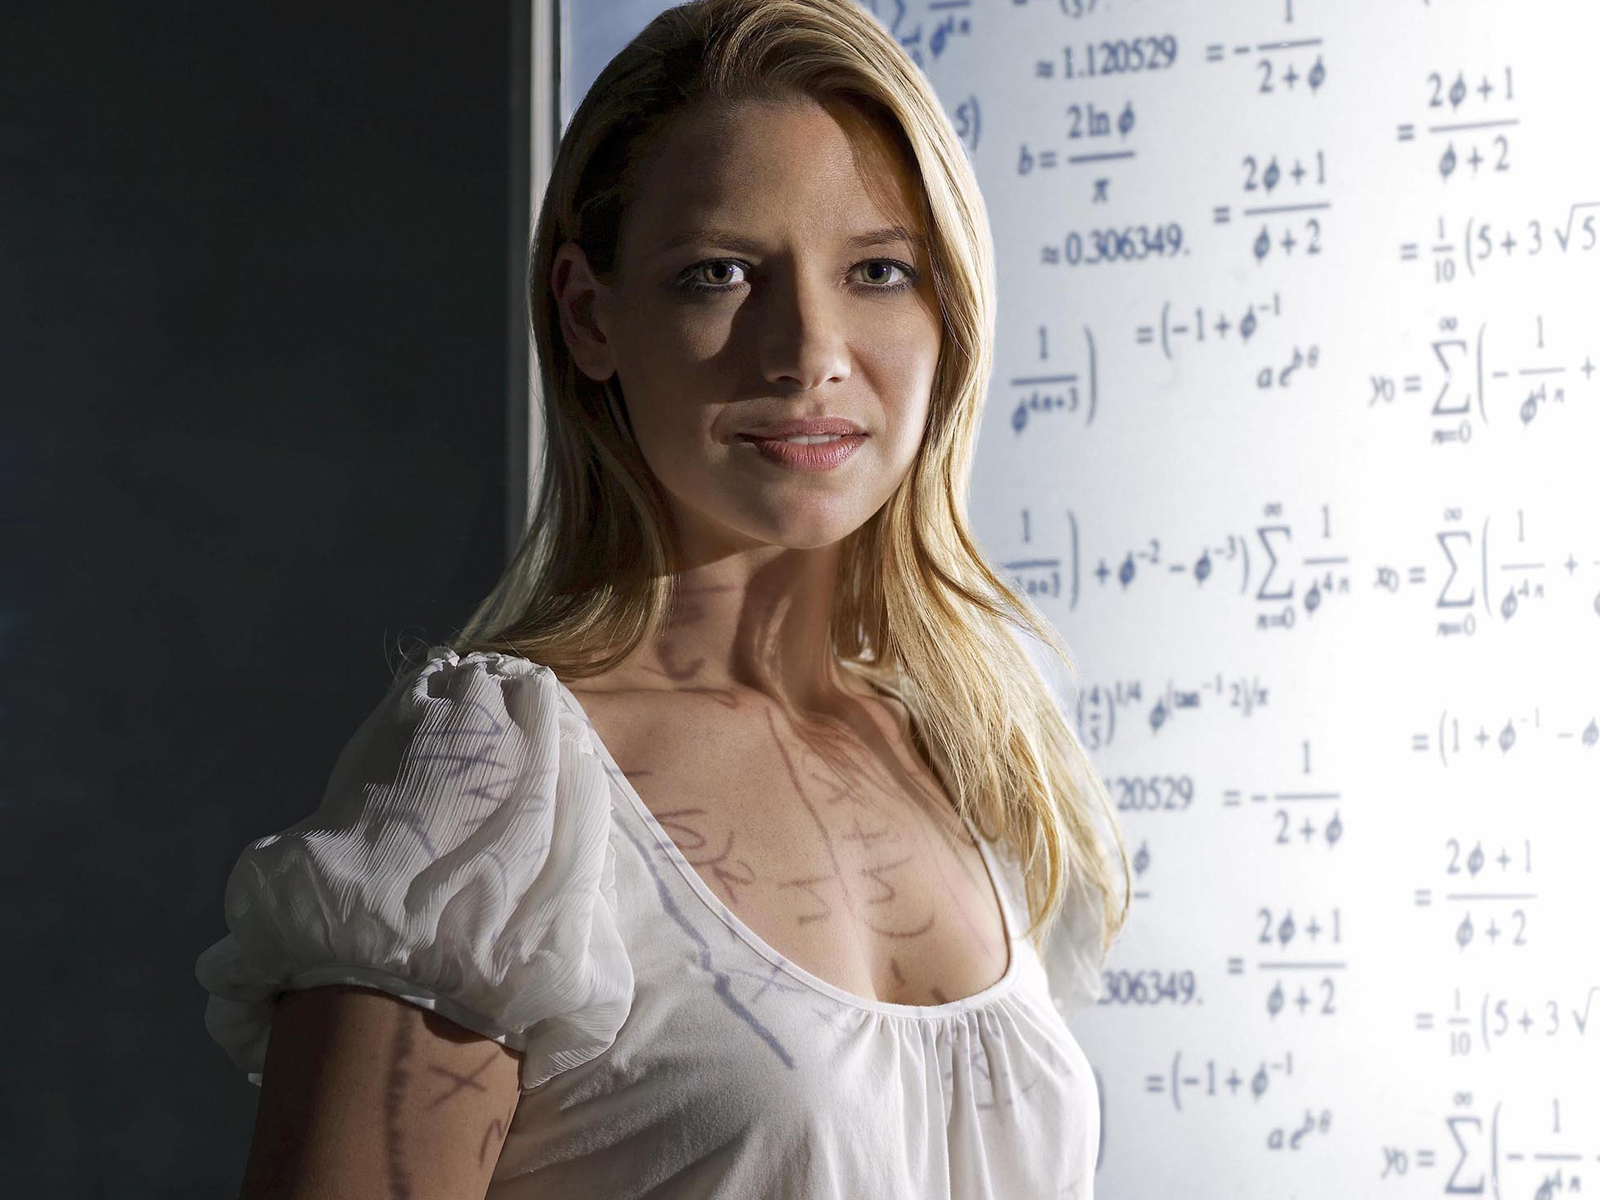 FRINGE: Agent Olivia Dunham (Anna Torv) investigates a disturbing pattern that blurs the line between the possible and the impossible on FRINGE premiering Tuesday, Sept. 9 (8:00-9:30 PM ET/PT) this fall on FOX. ©2008 Fox Broadcasting Co. Cr: George Holz/FOX